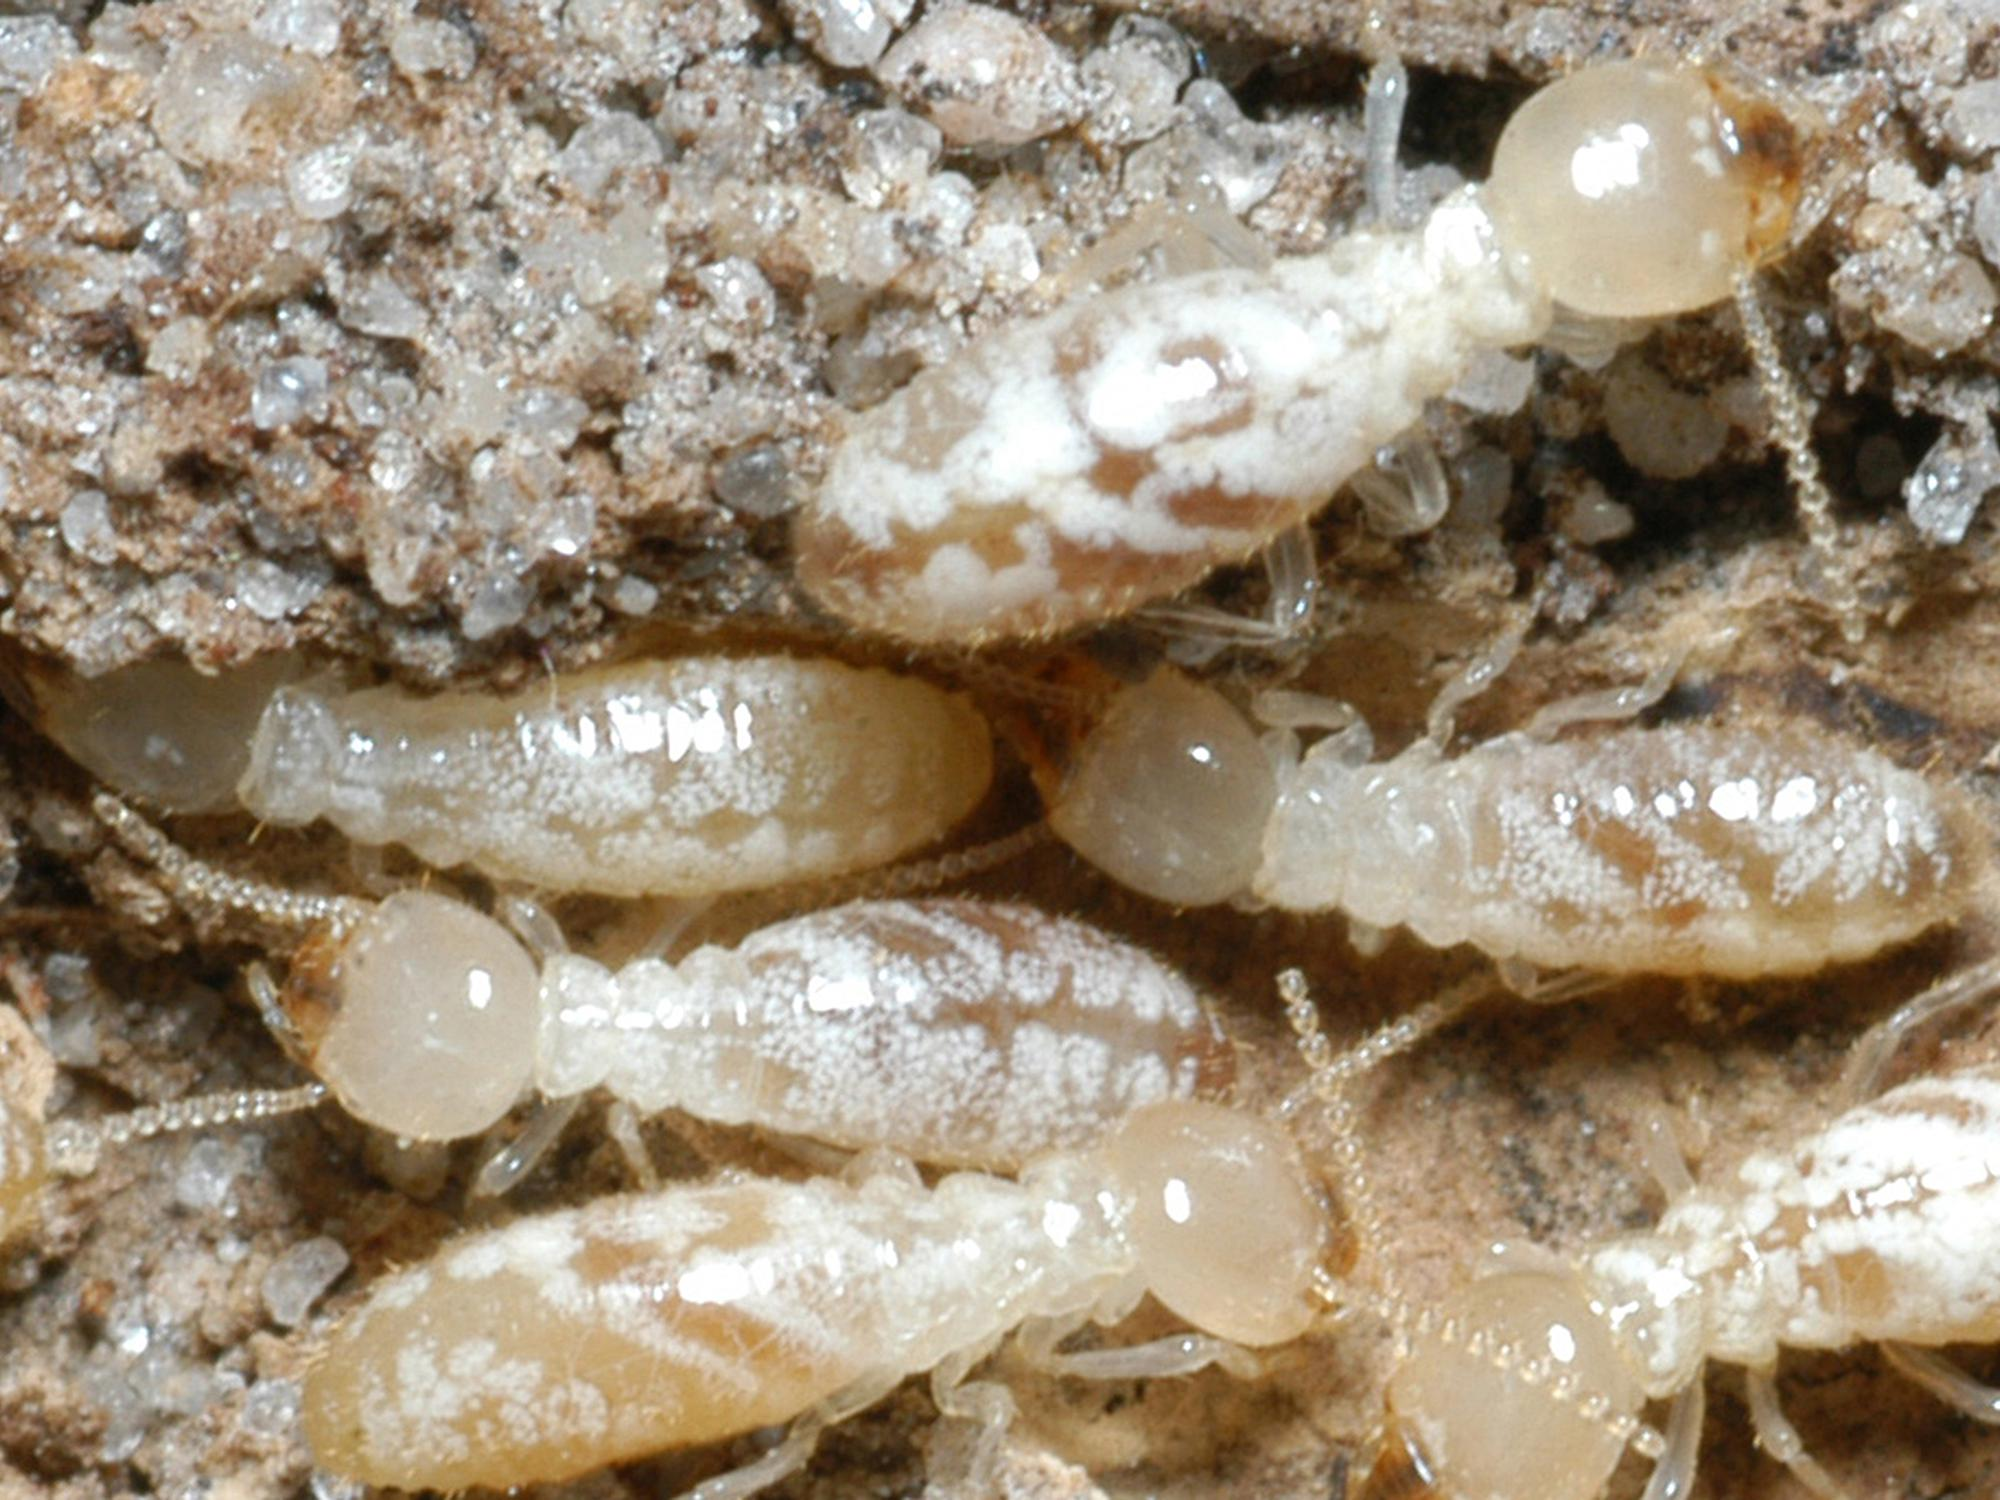 Termites swarm when they are looking for new places to begin colonies. Left uncontrolled, these pests can cause extensive damage to houses and other buildings. (Photo by MSU Extension Service/Blake Layton)